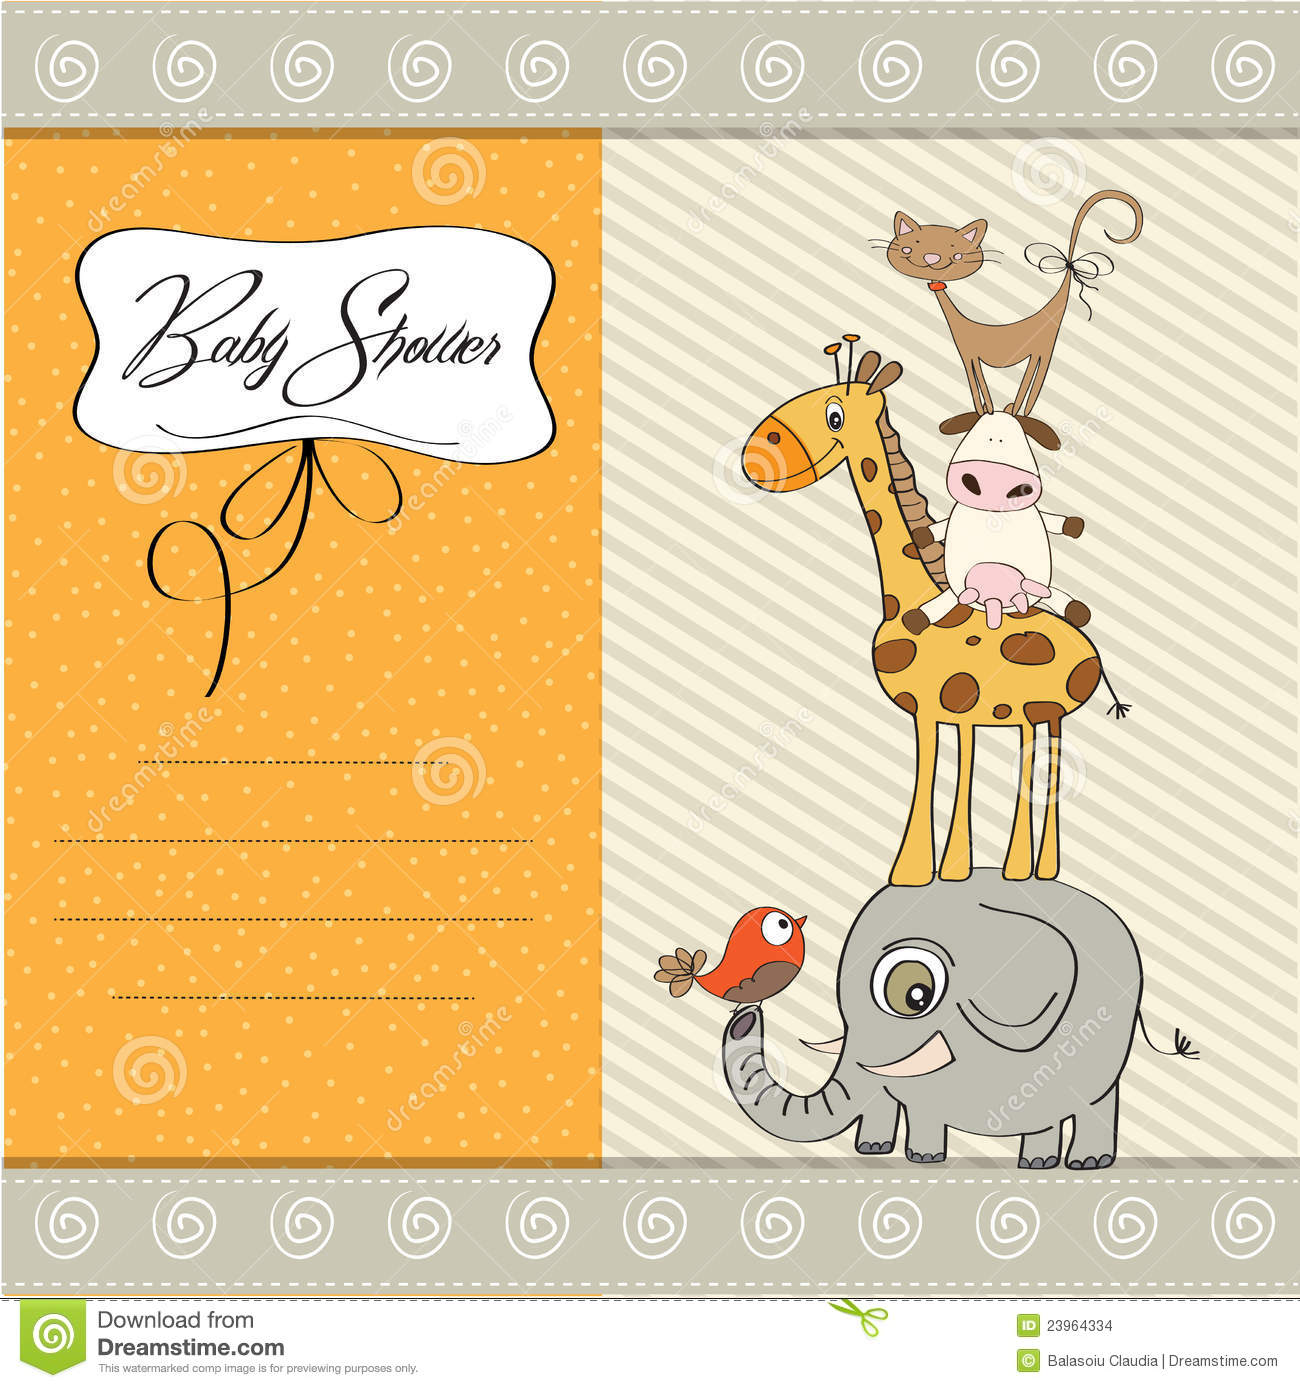 baby shower template card stock images image 23964334